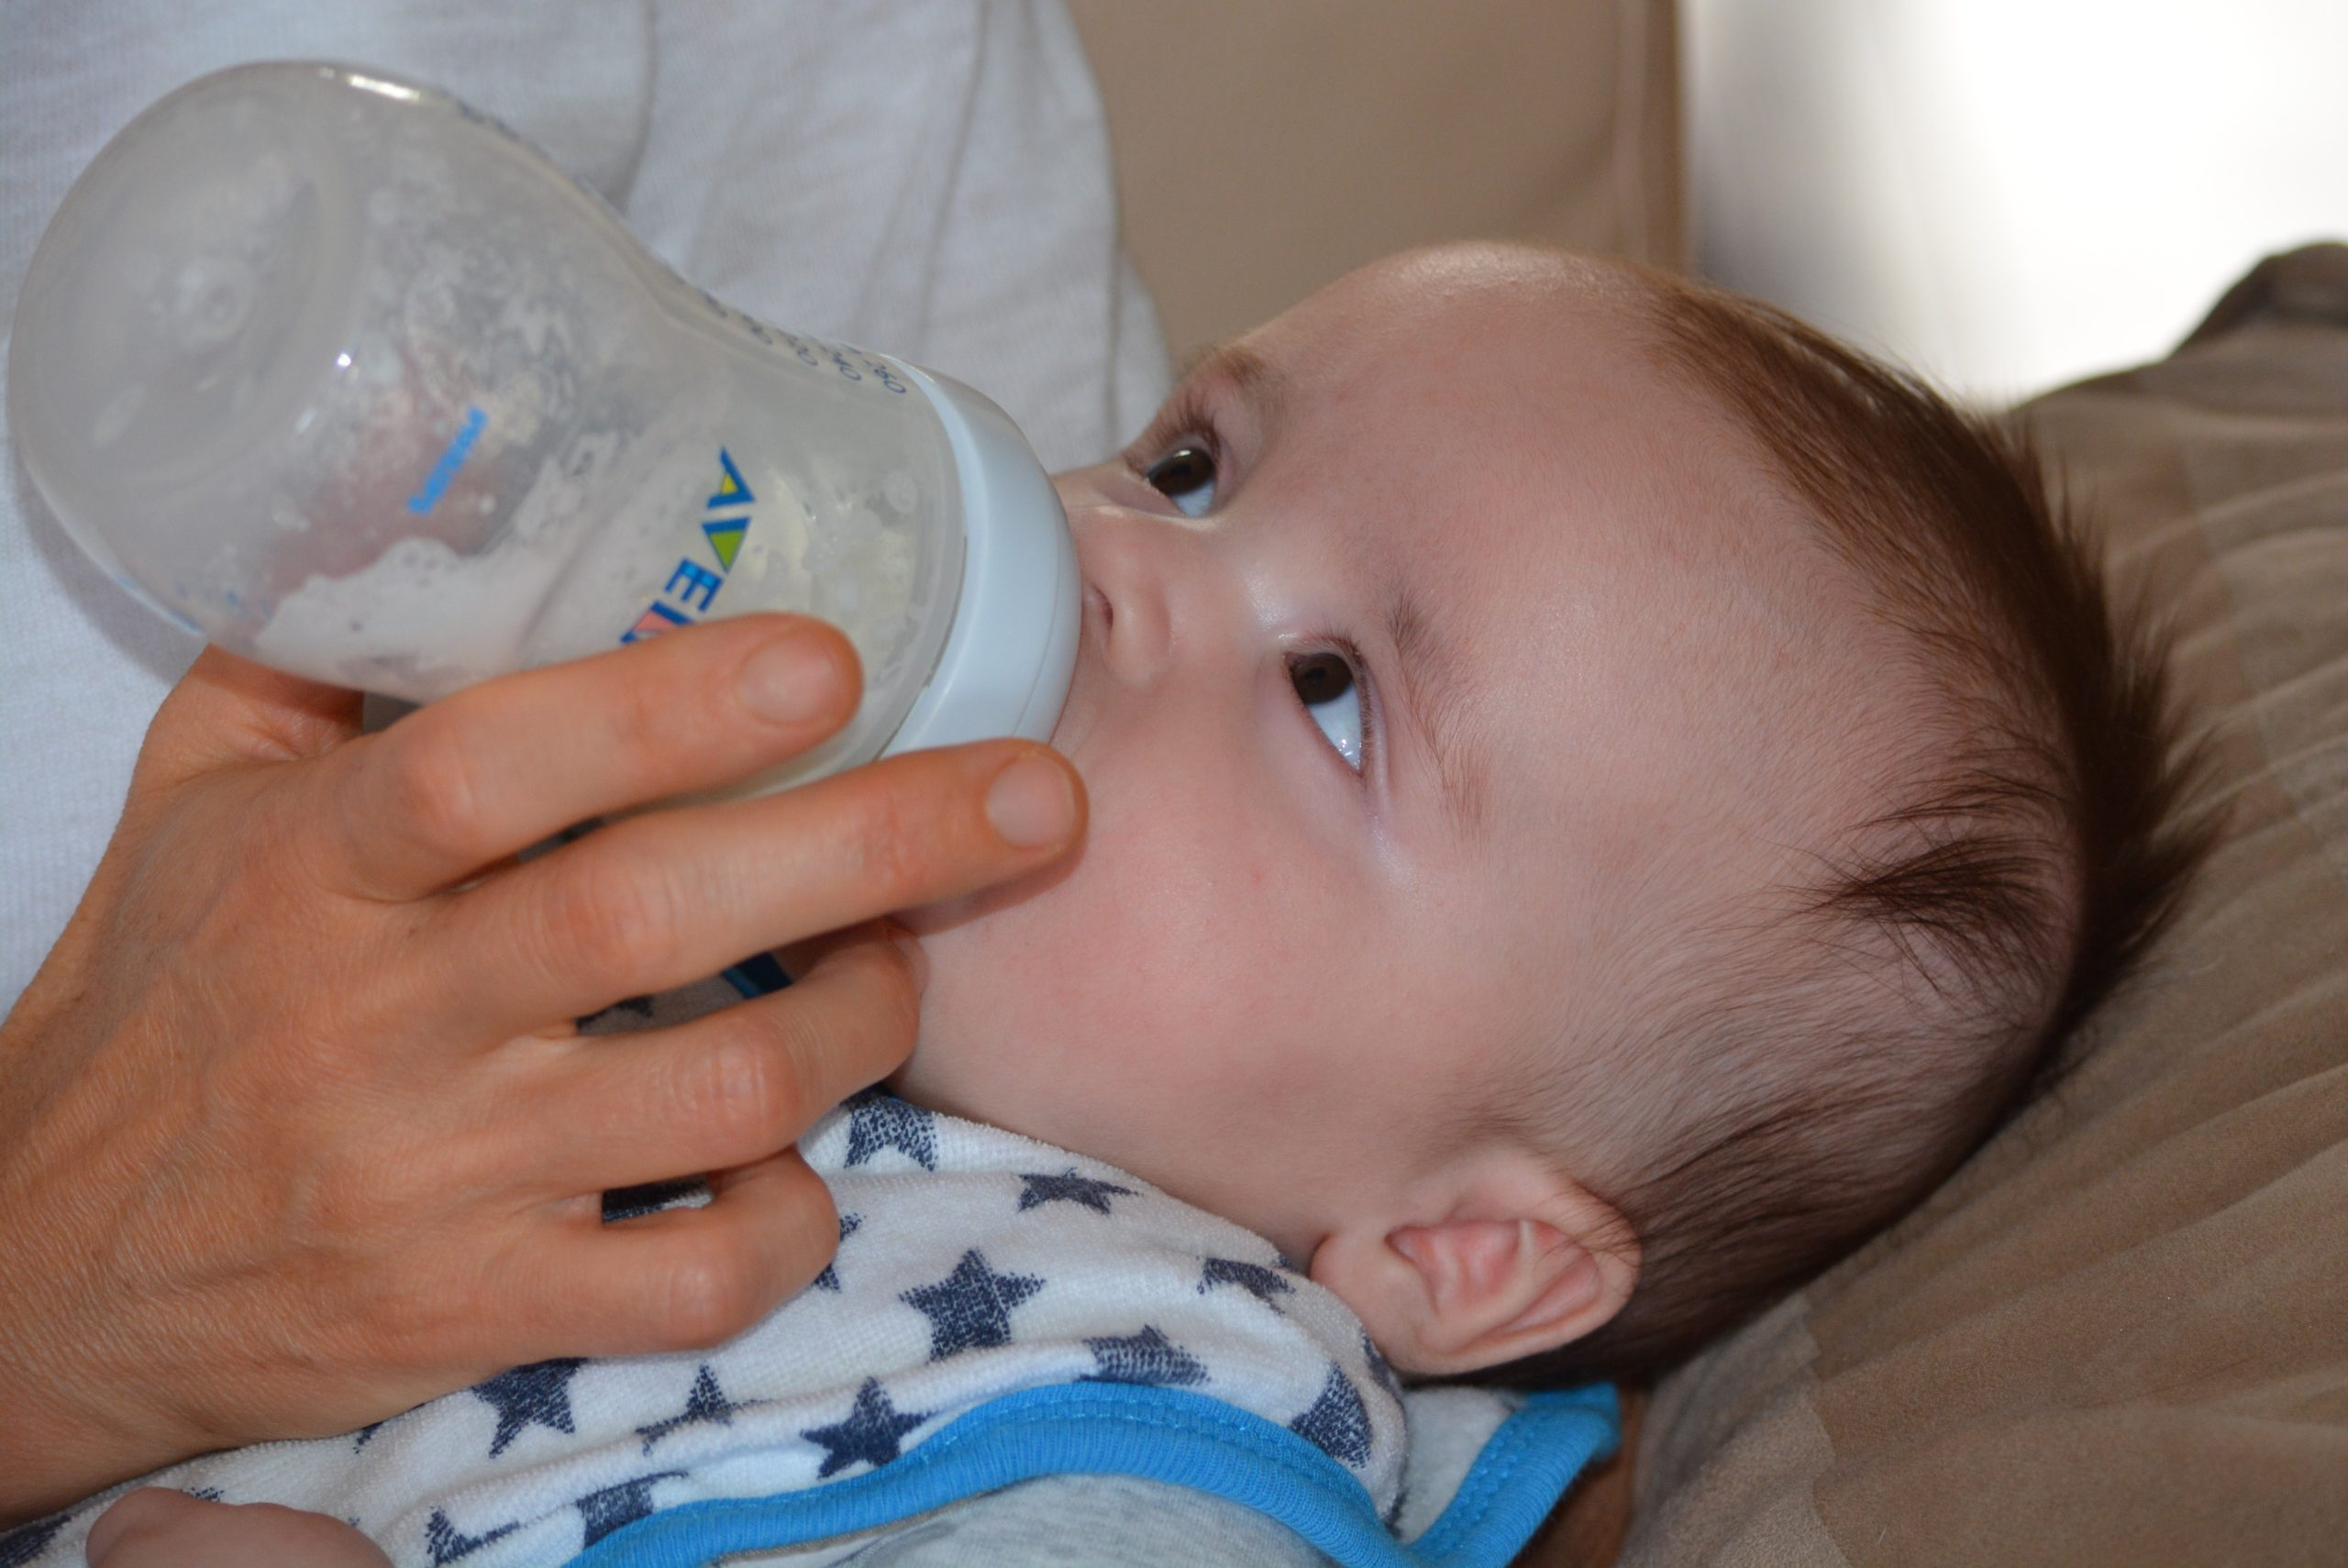 A baby being fed with a bottle